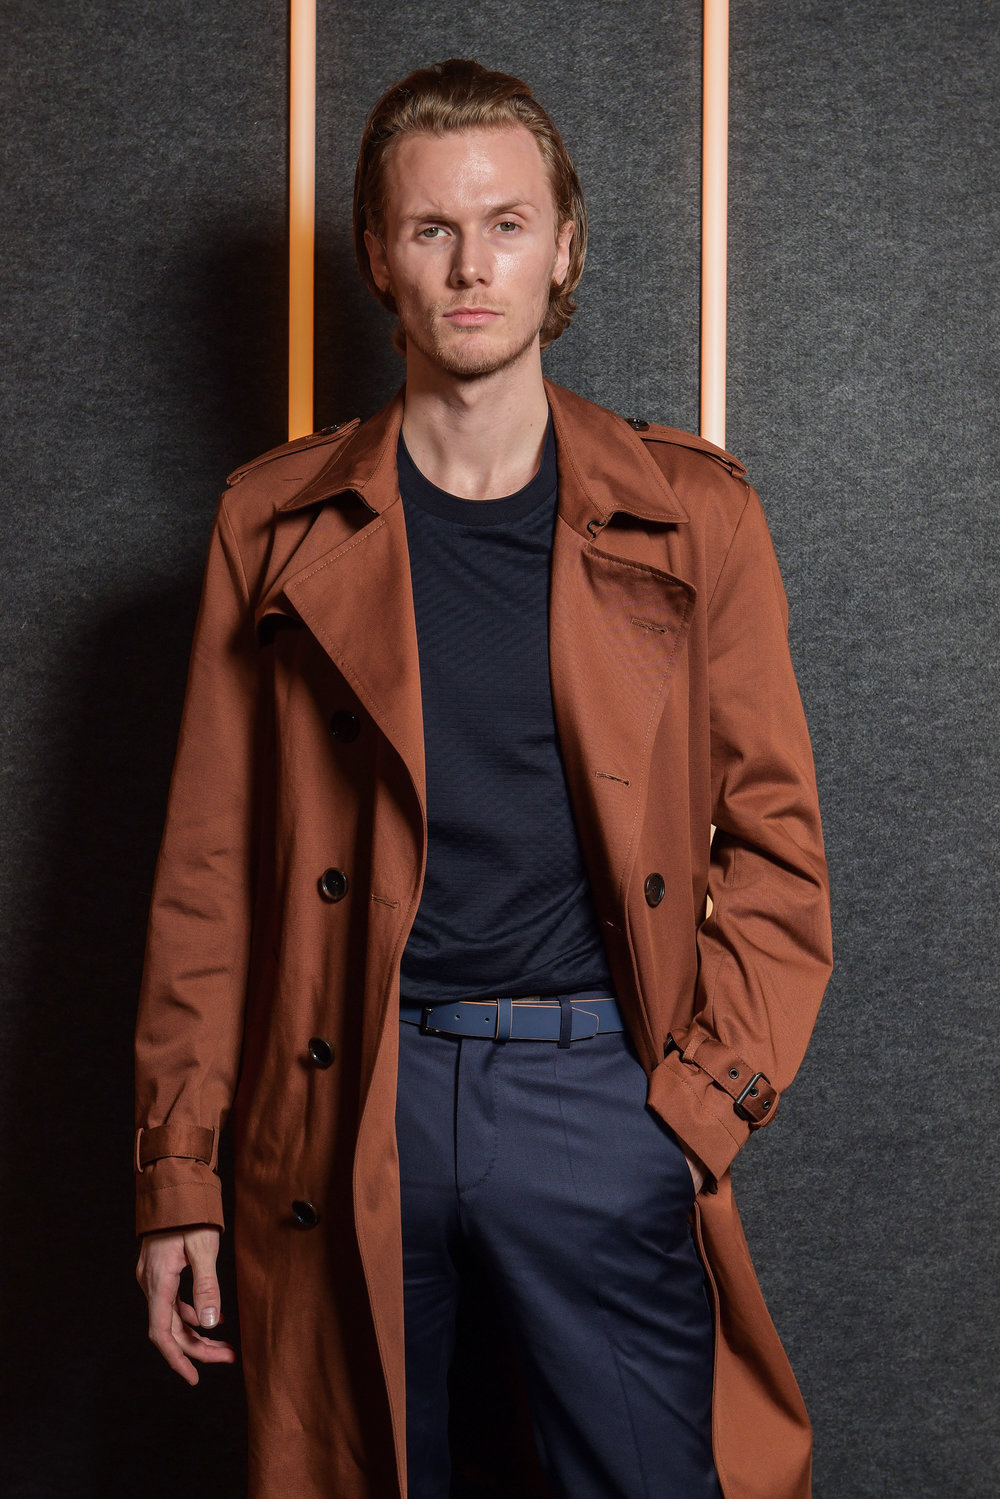 Conrad Hilton backstage at the BOSS Fall/Winter 2019 show at Basketball City during New York Fashion Week on Wednesday, February 13, in New York City. Photography, Courtesy of BOSS.